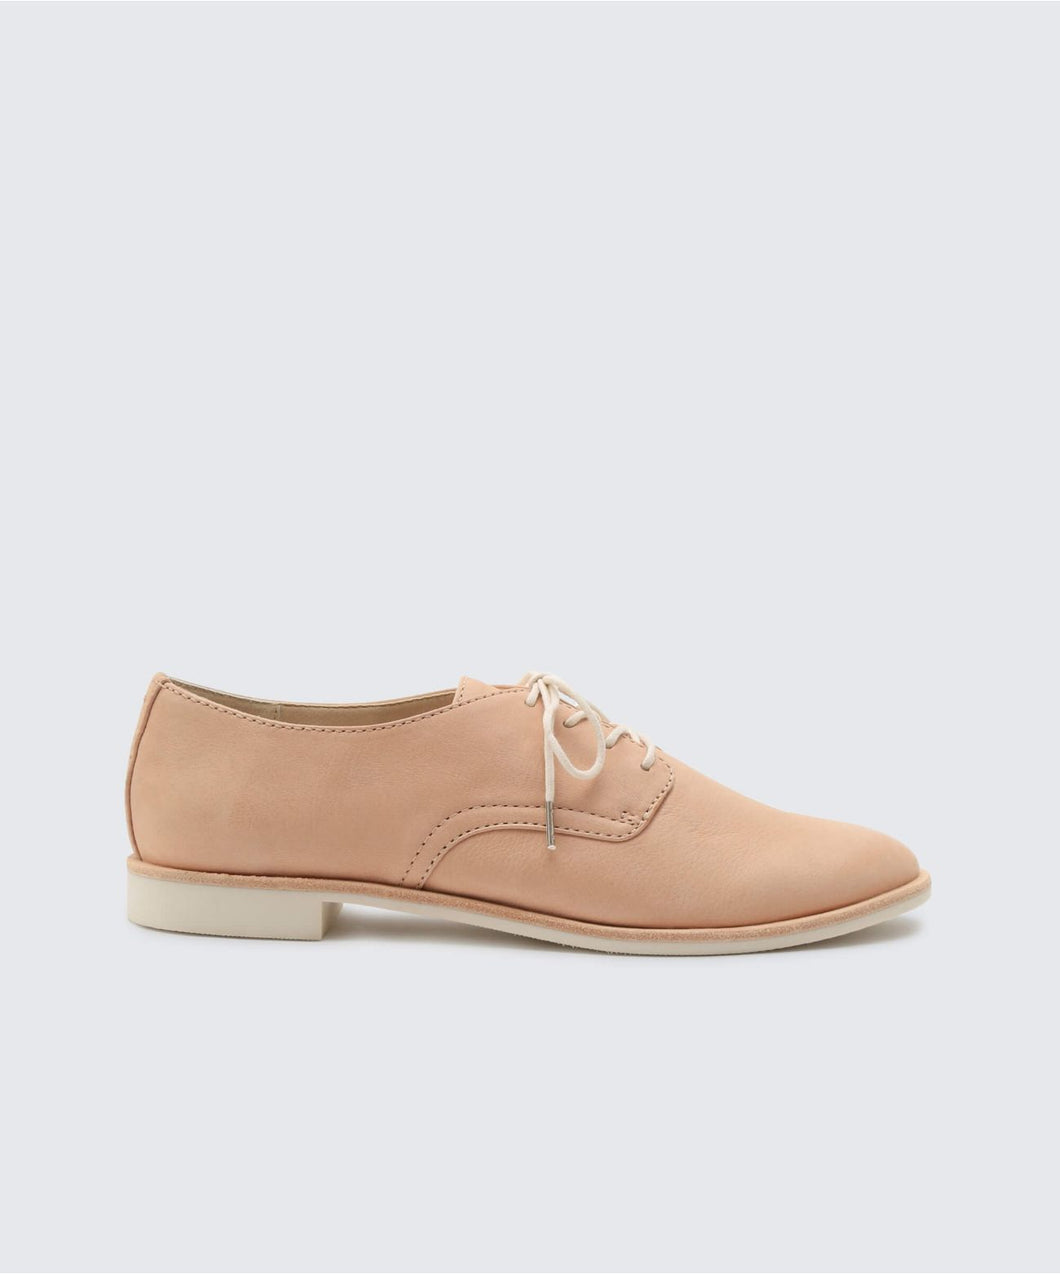 KYLE FLATS NUDE -   Dolce Vita